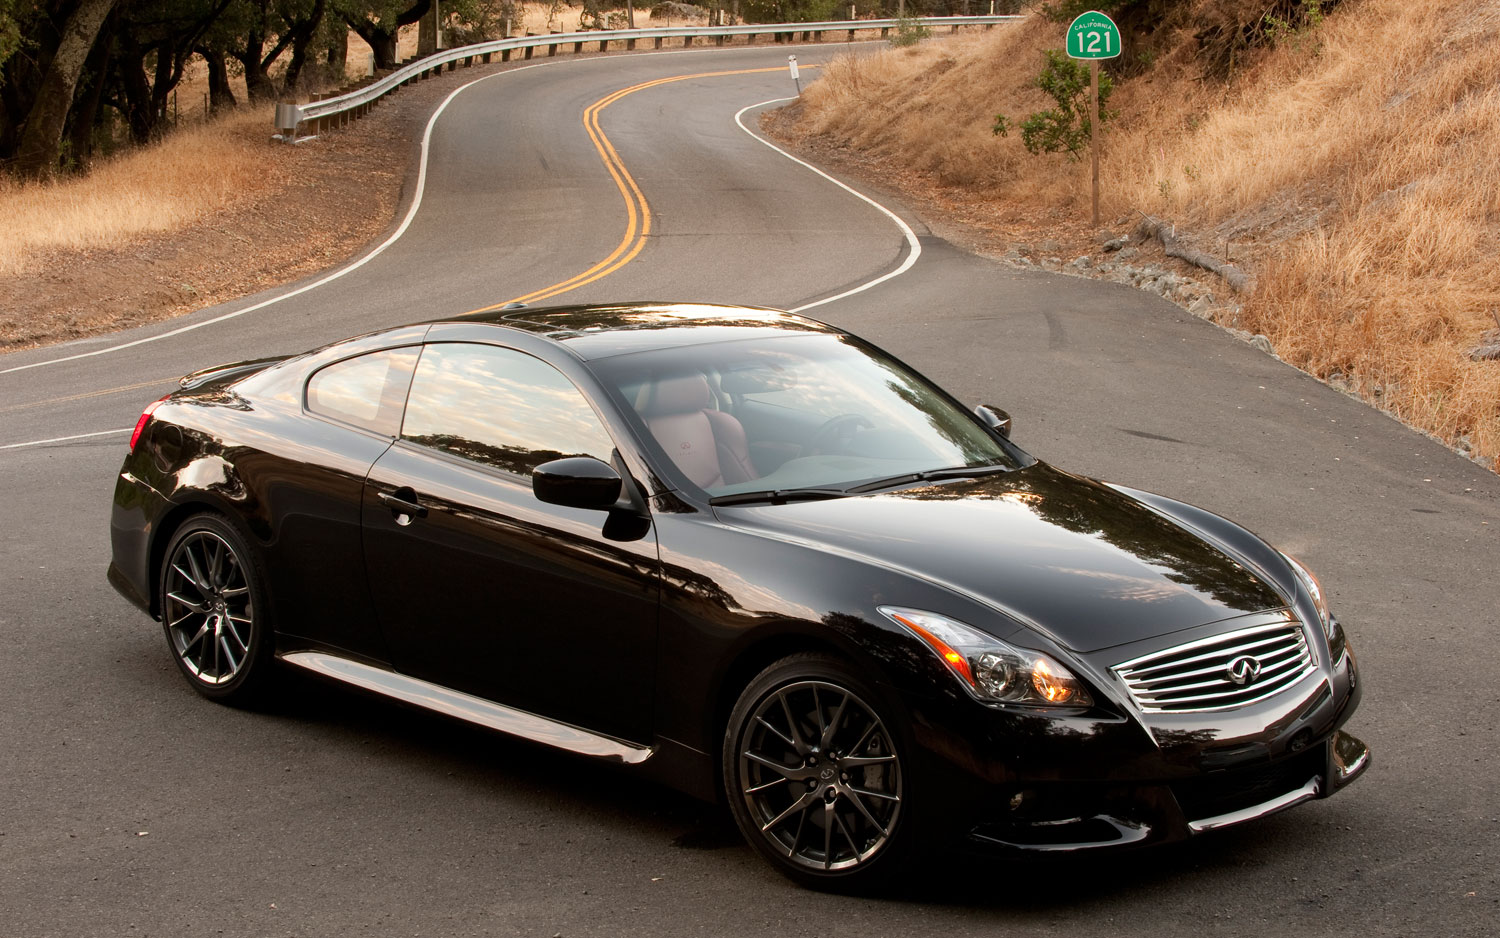 2011 Infiniti G37 Coupe Ipl Front Right View Parked1